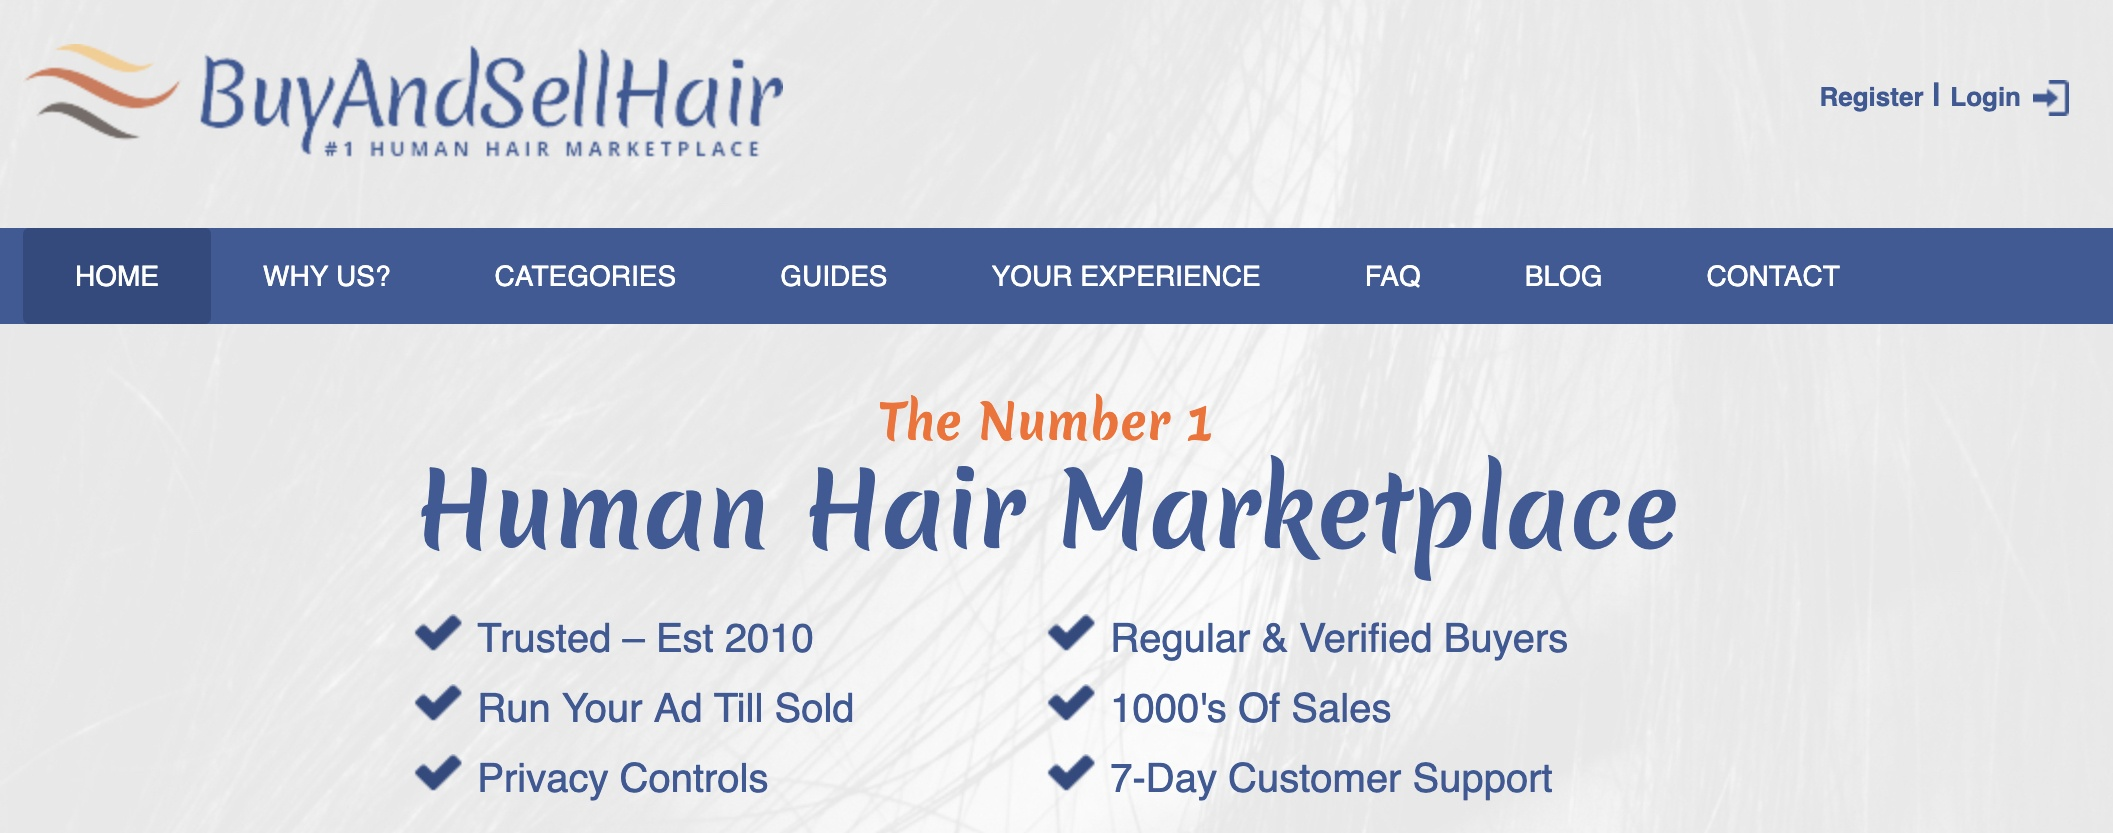 can you make money with buyandsellhair